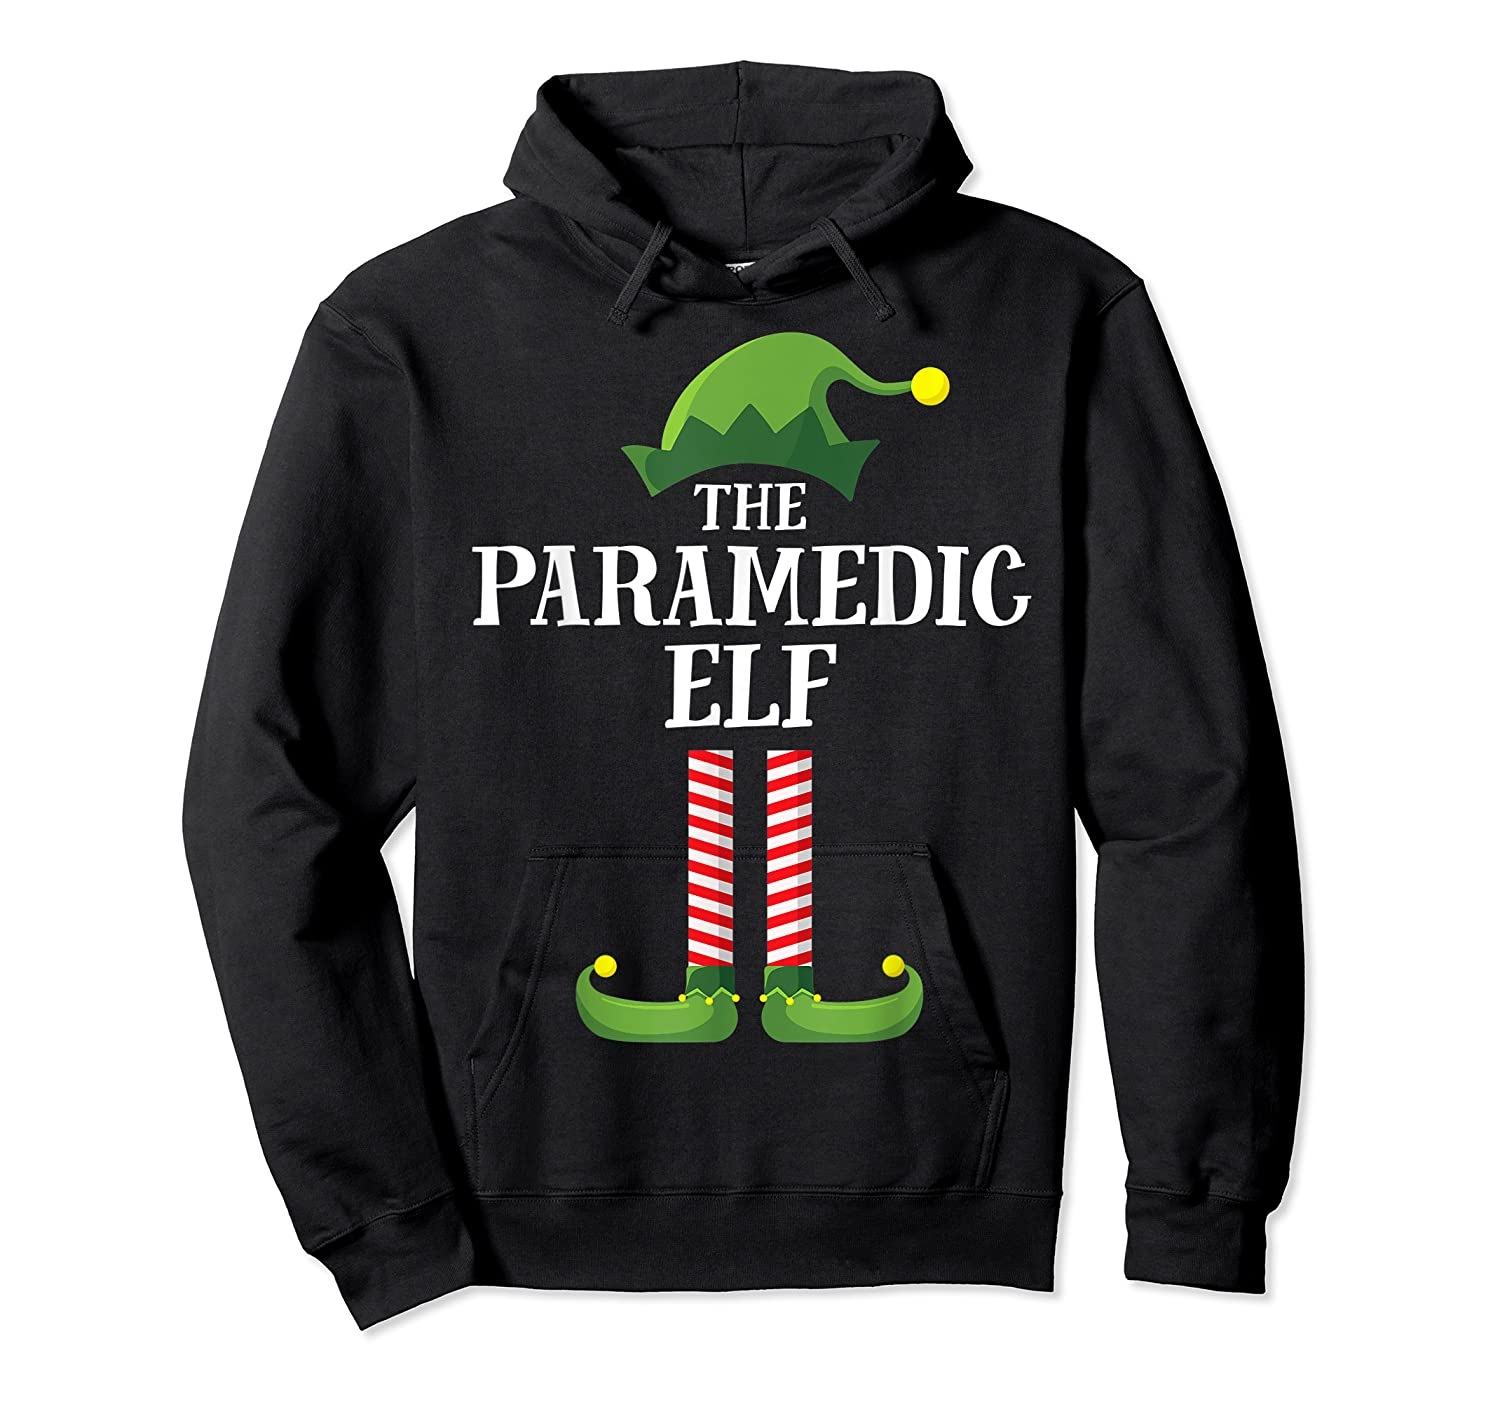 Paramedic Elf Matching Family Group Christmas Party Pajama Shirts Unisex Pullover Hoodie